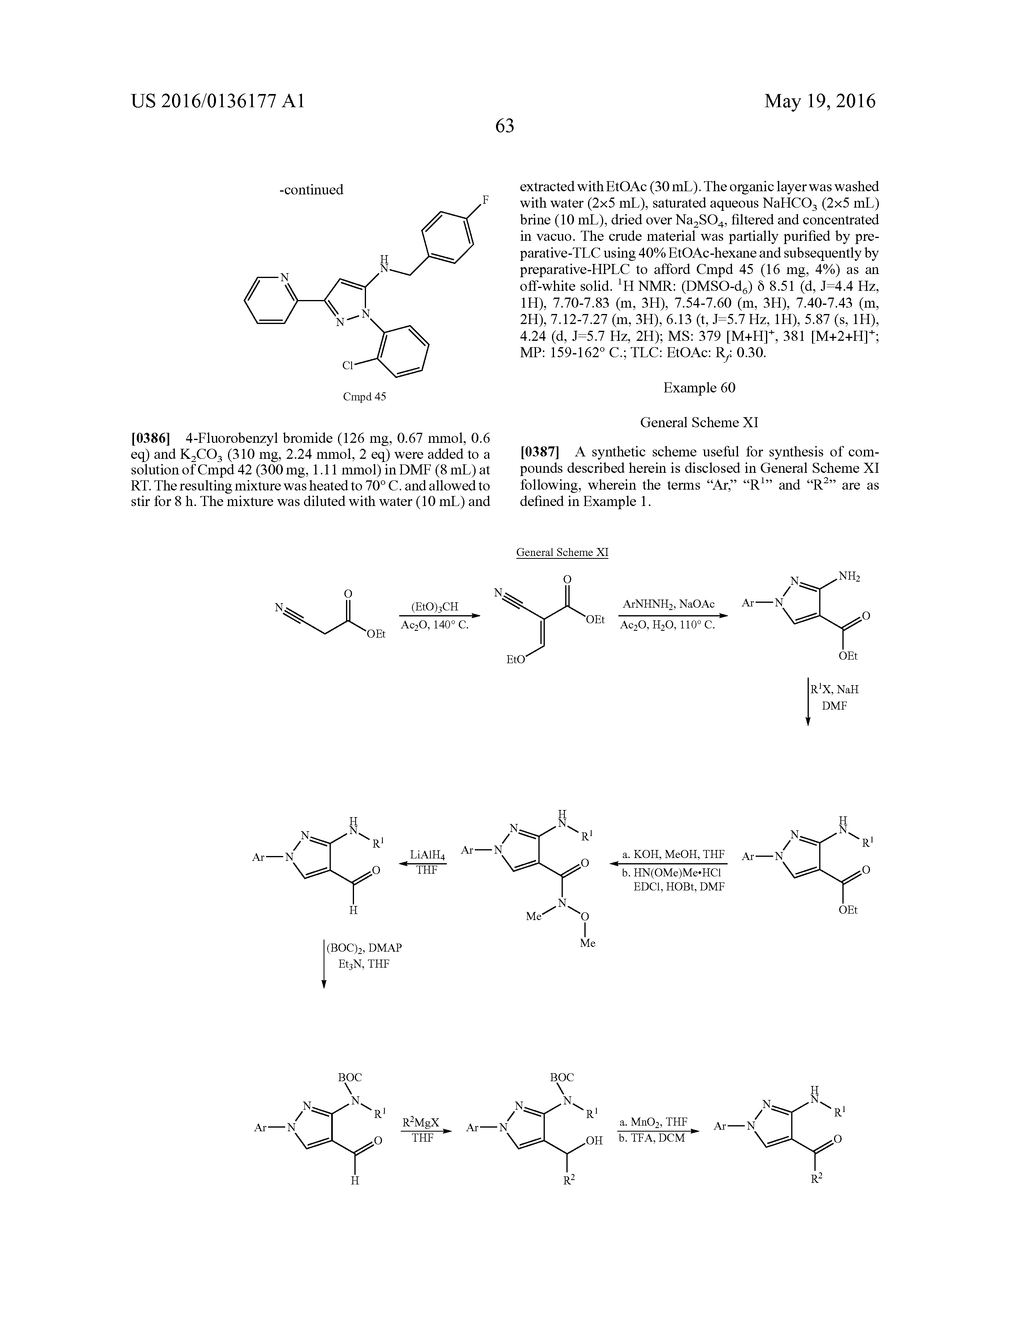 MULTISUBSTITUTED AROMATIC COMPOUNDS AS INHIBITORS OF THROMBIN - diagram, schematic, and image 64